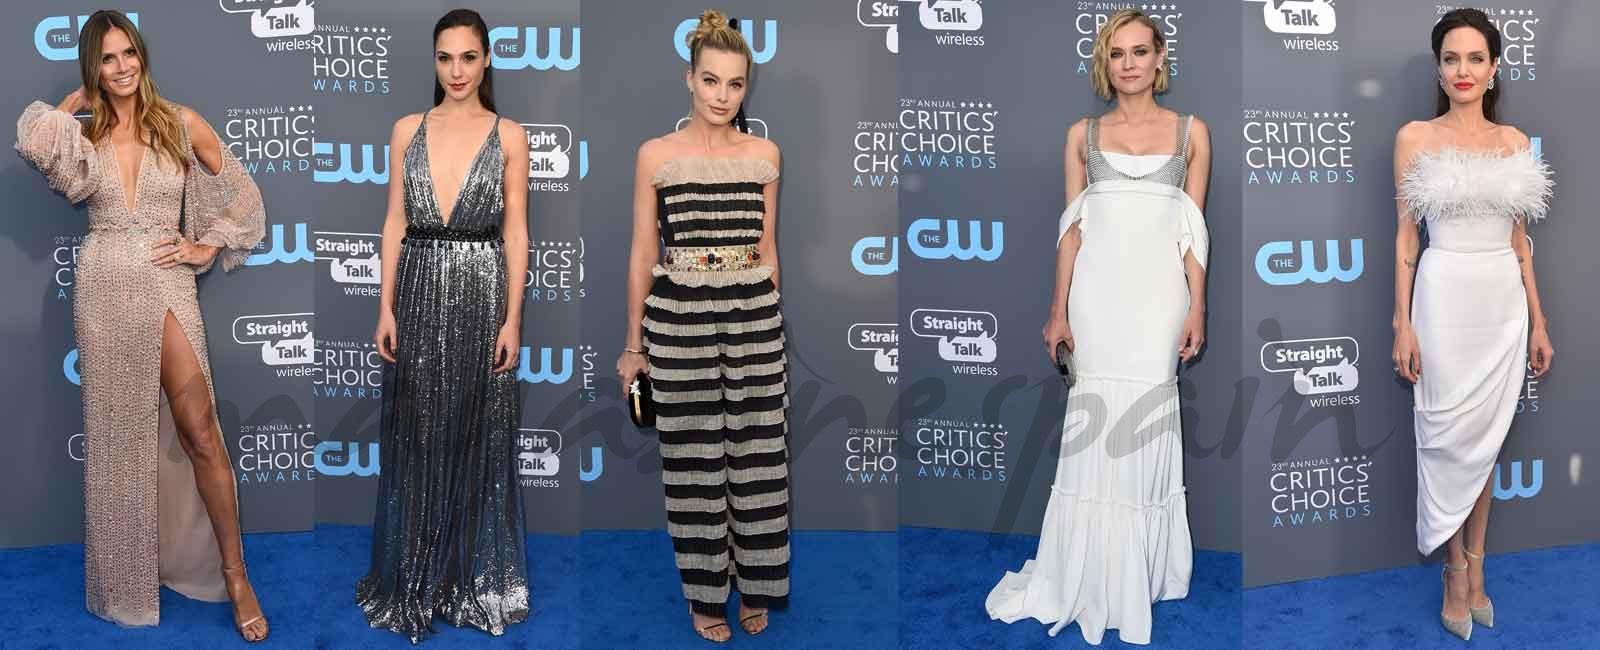 La espectacular alfombra roja de los Critic's Choice Awards 2018